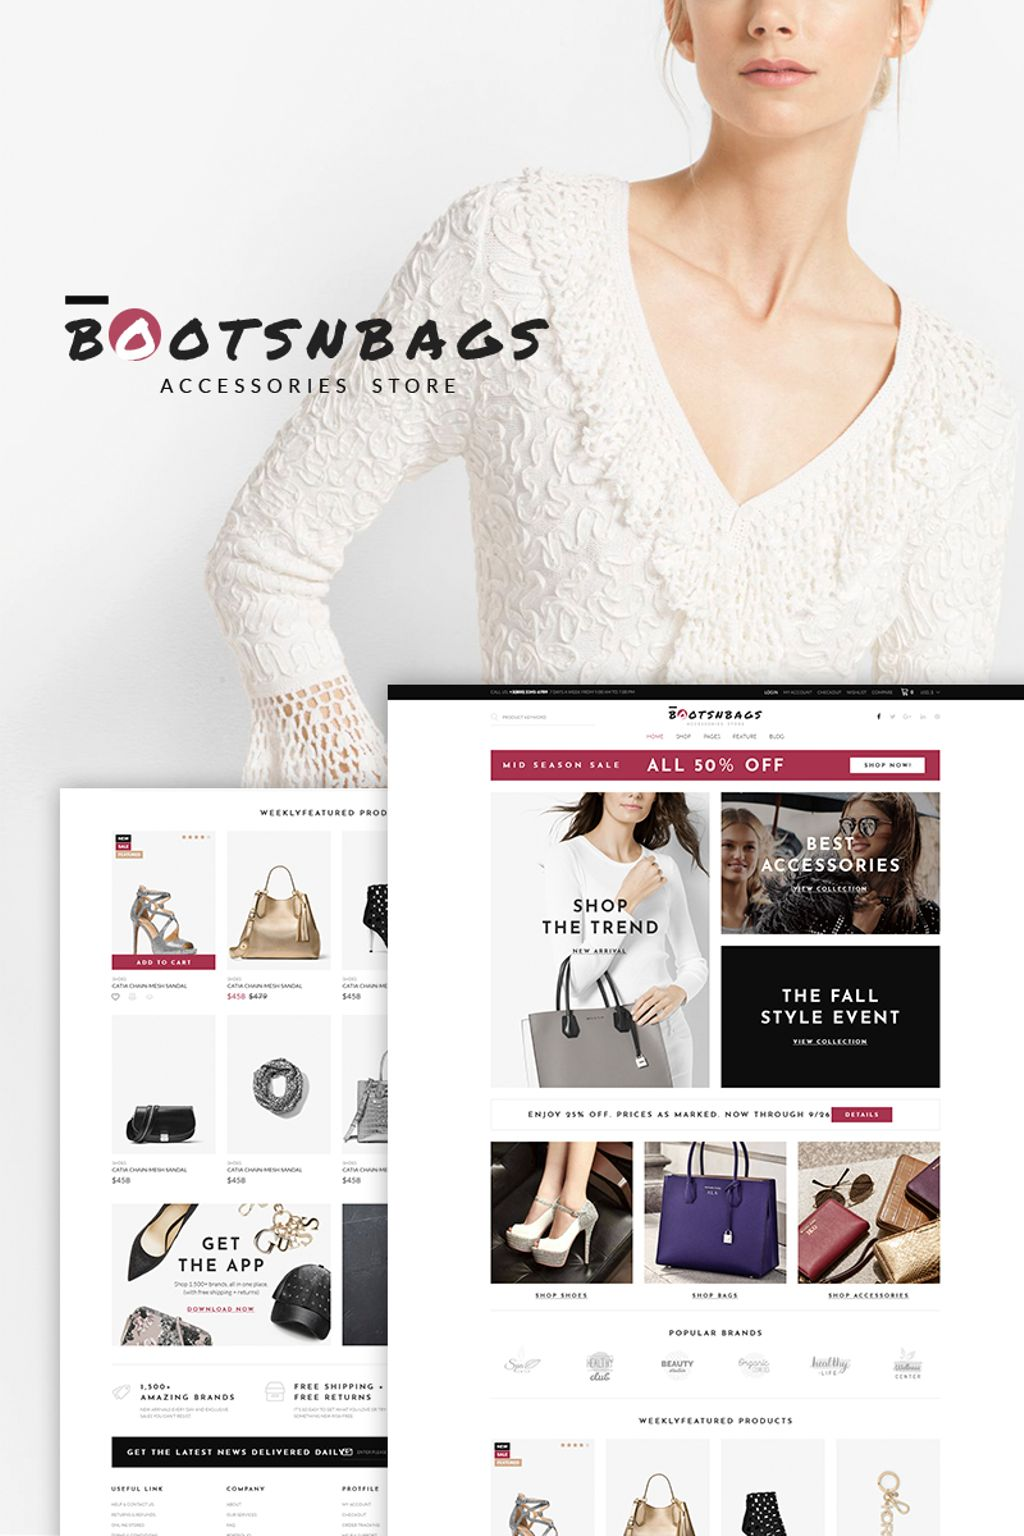 BootsnBags - Accessories Store №67263